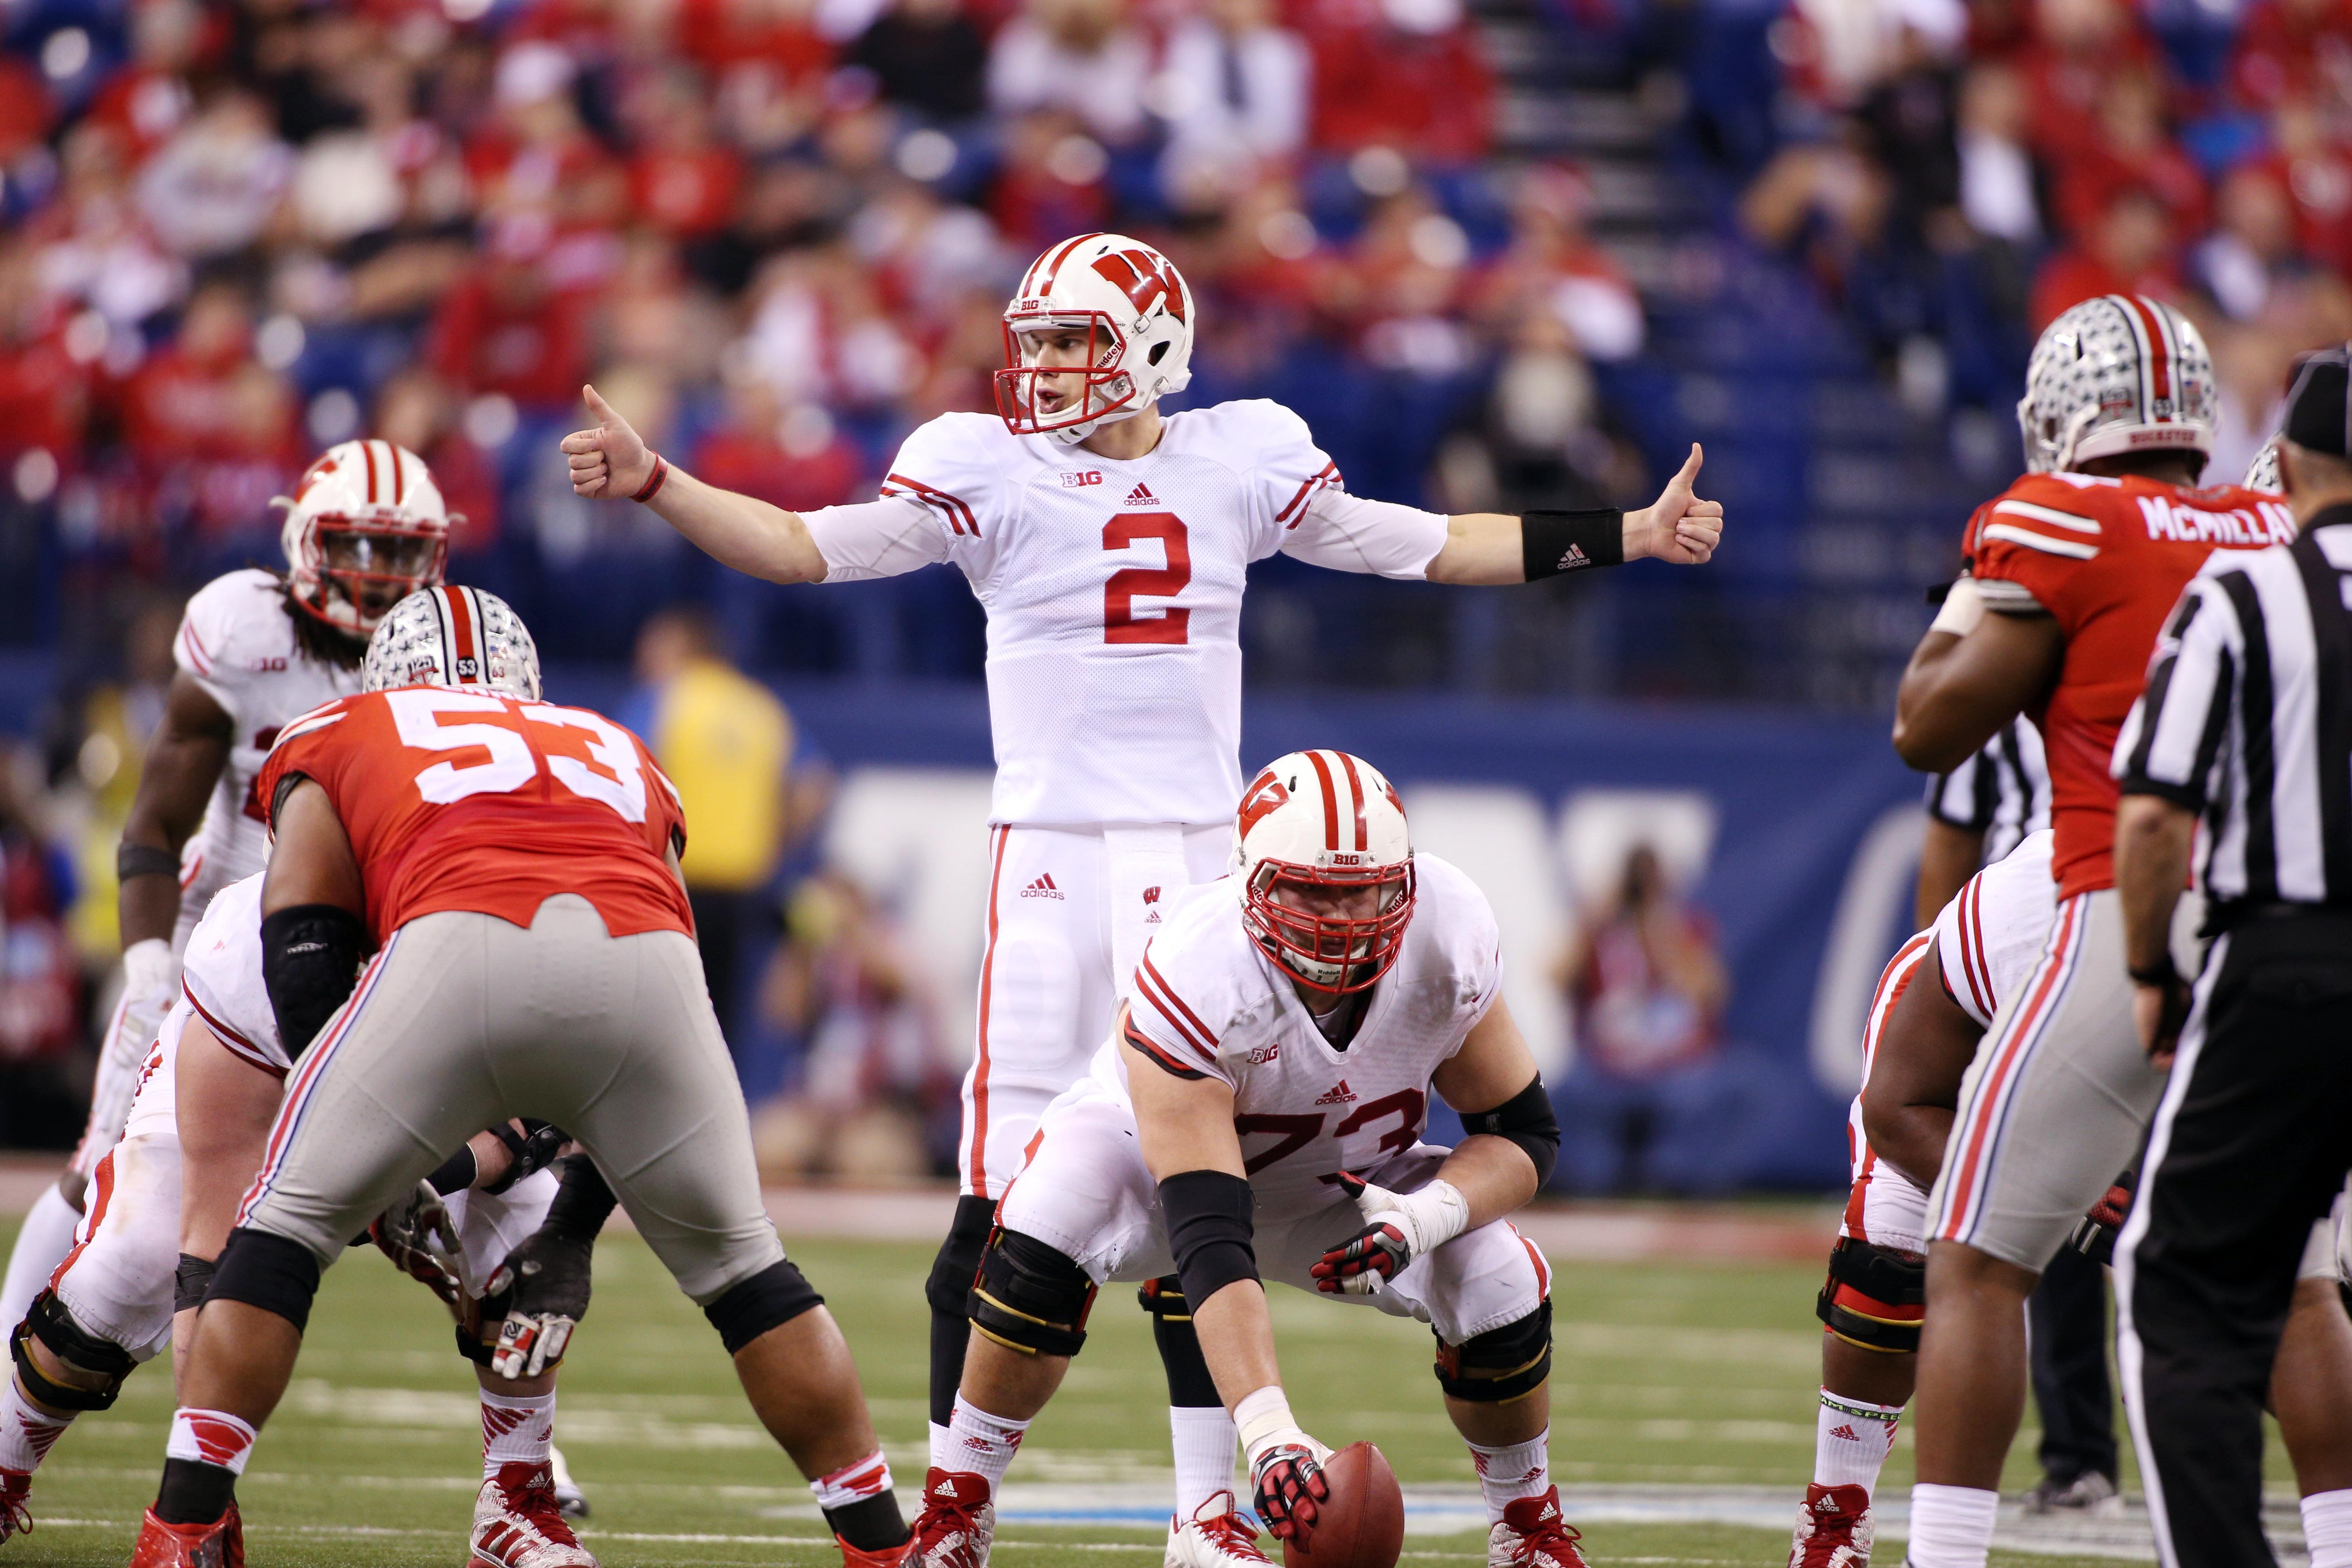 Will it be Joel Stave's time in Paul Chryst's system in 2015?